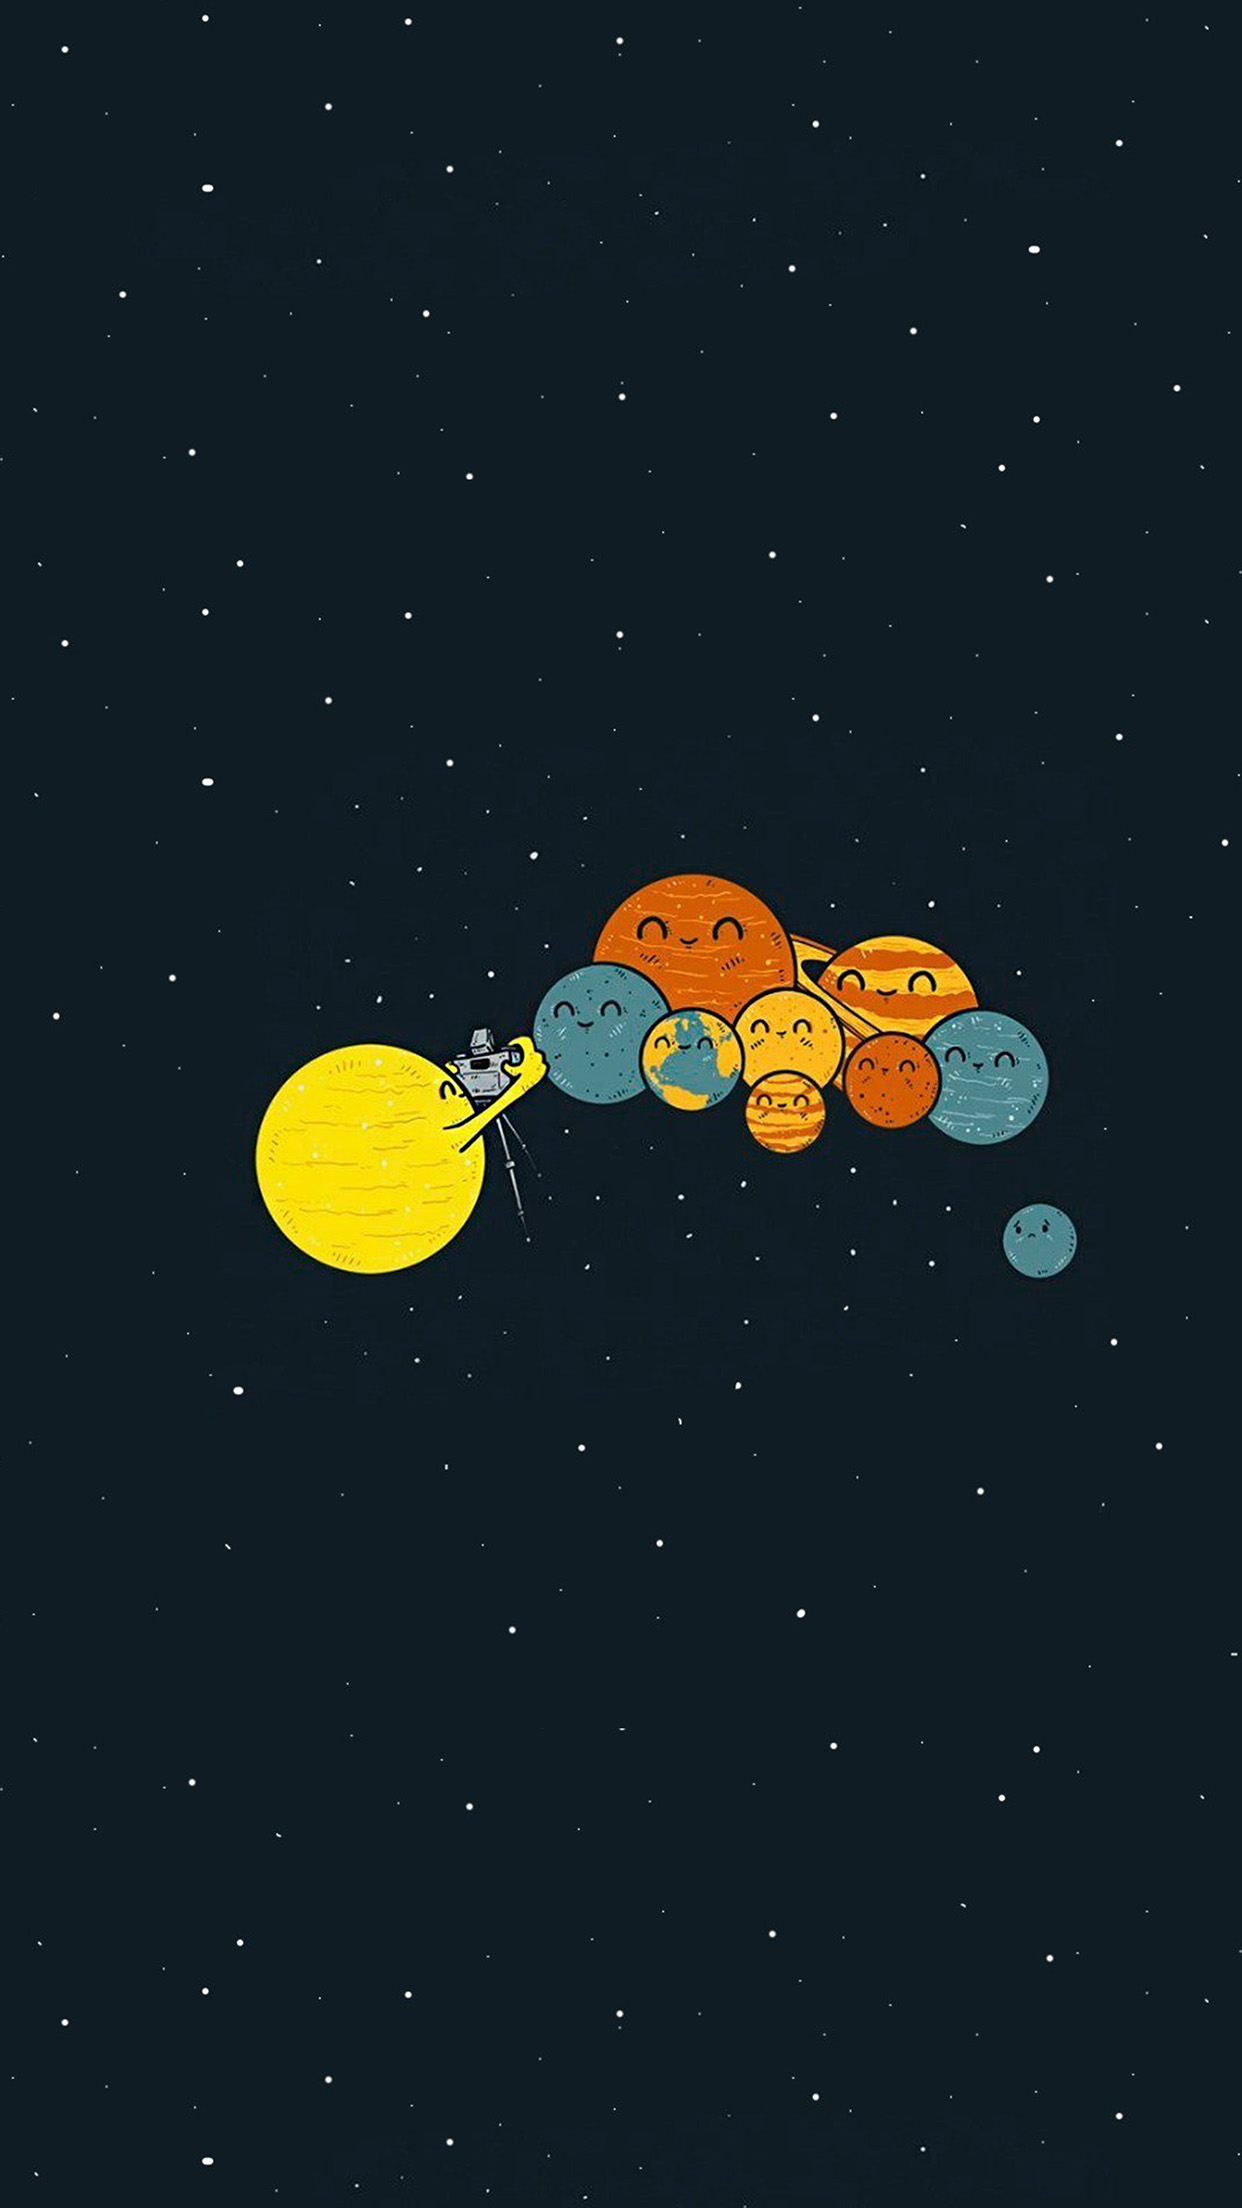 Iphone wallpaper ar48 planets cute - Classic art wallpaper iphone 5 ...